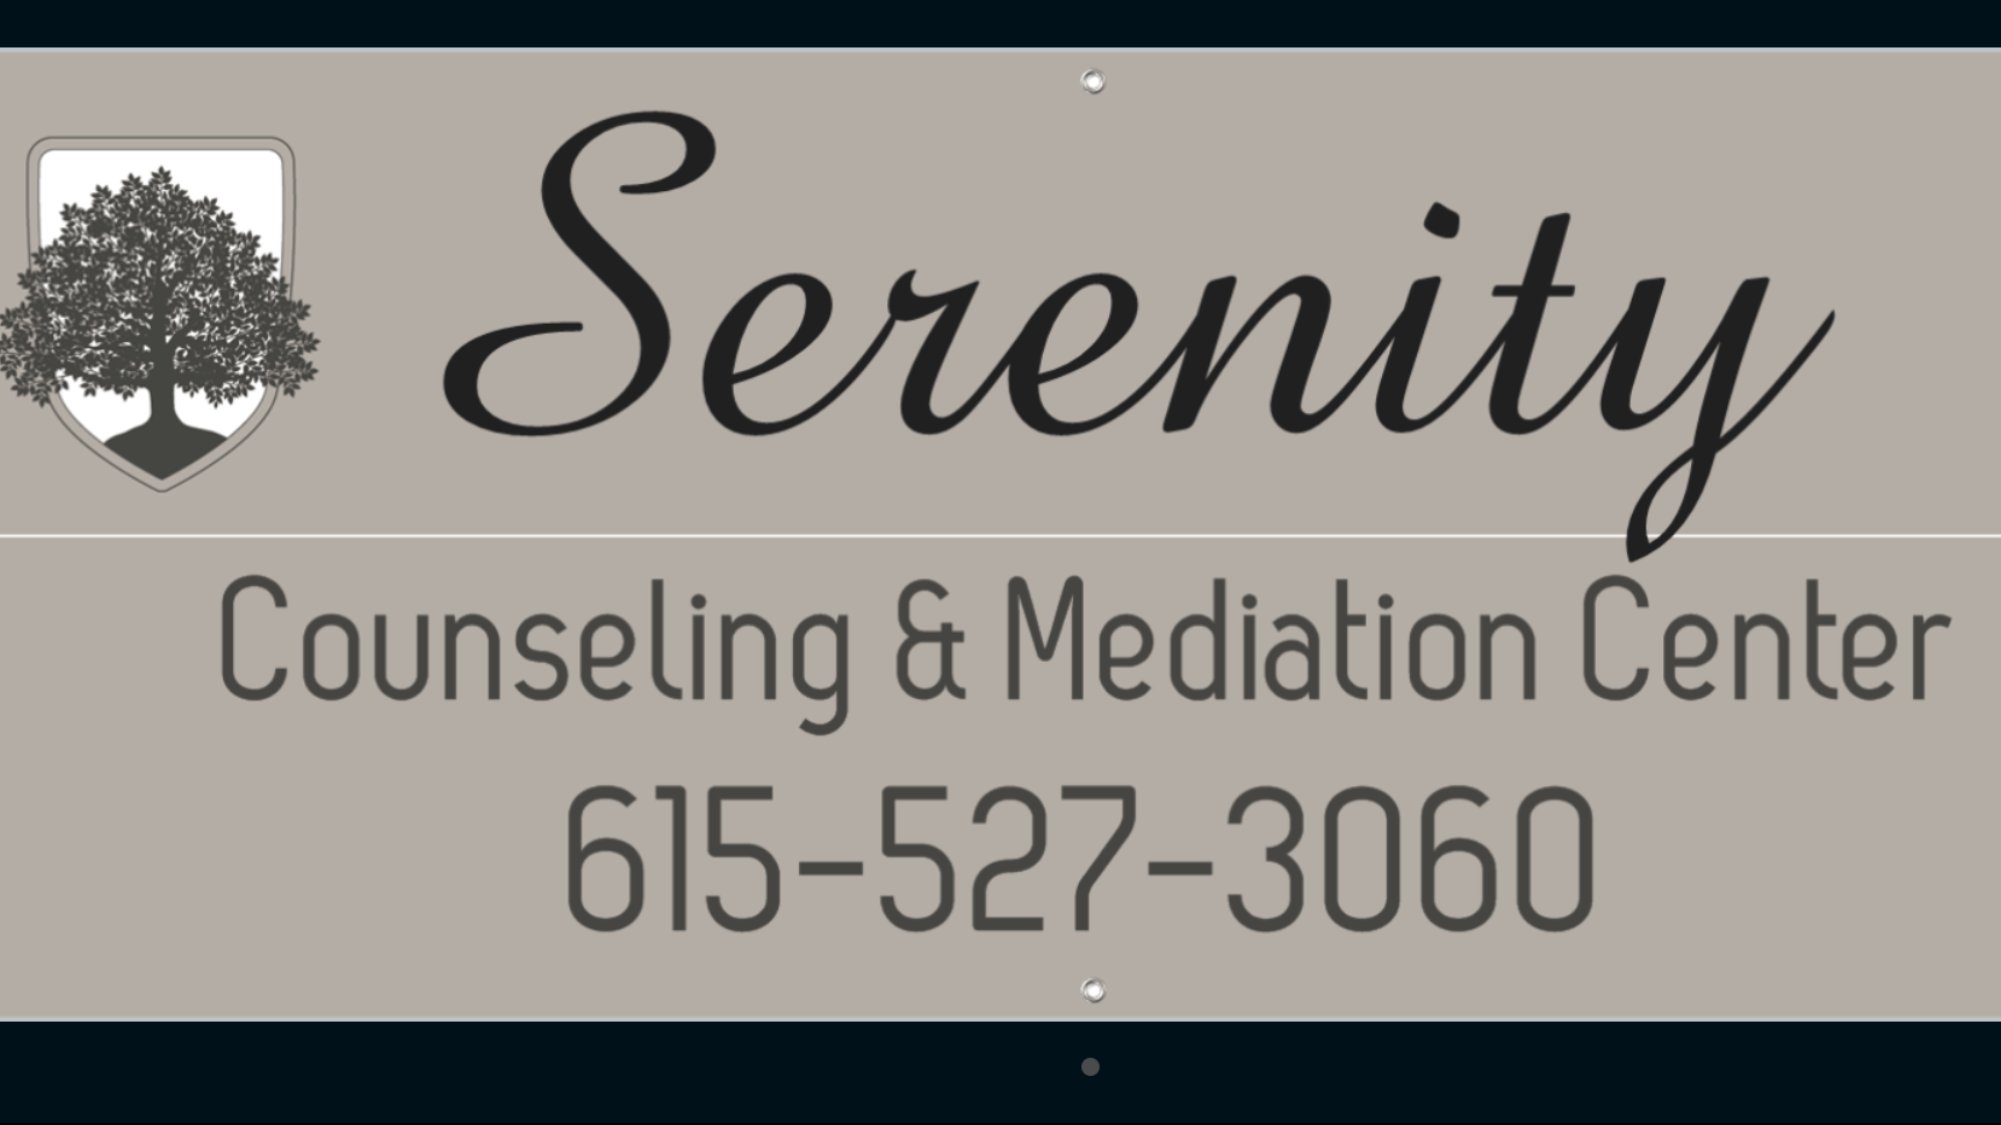 Serenity Counseling & Mediation Center In Gallatin, Tn. Dodge Point Country Club Electric Cars In Usa. Life Insurance Term Quotes Mn Assisted Living. Asymmetric Dense Breast Tissue. Employee Internet Monitor Door Store Glenview. Hollywood Christian School Purple Kush Strain. Joomla Search Engine Optimization. Georgia Disability Lawyer Single Member Llc. Free Sql Server Hosting Grossmont High School